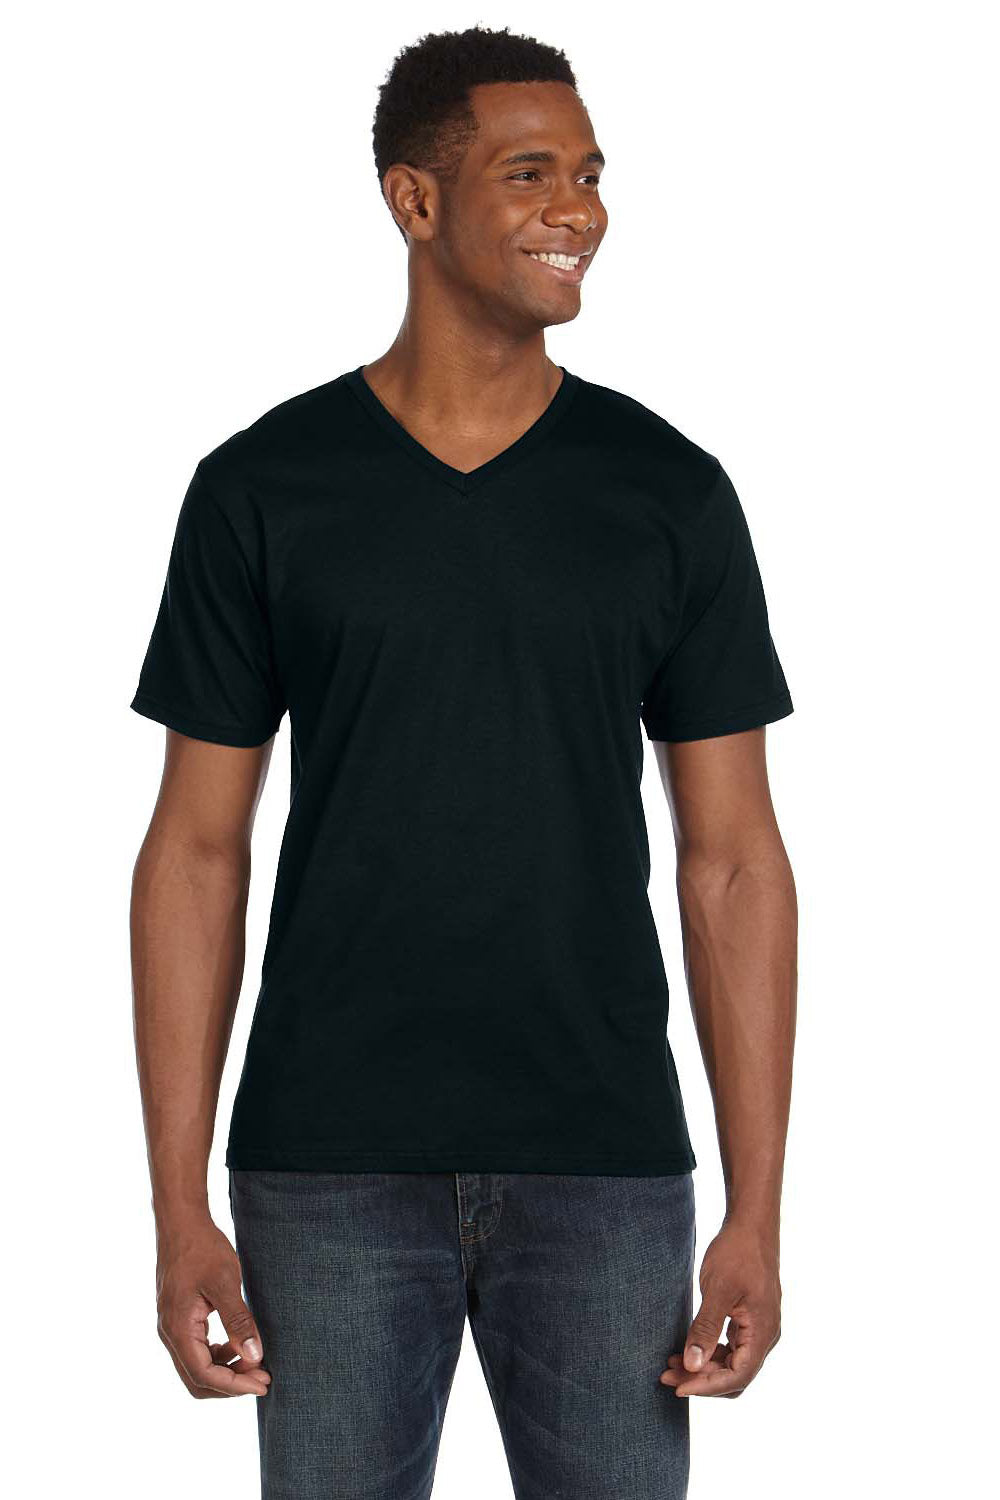 Anvil 982 Mens Short Sleeve V-Neck T-Shirt Black Front